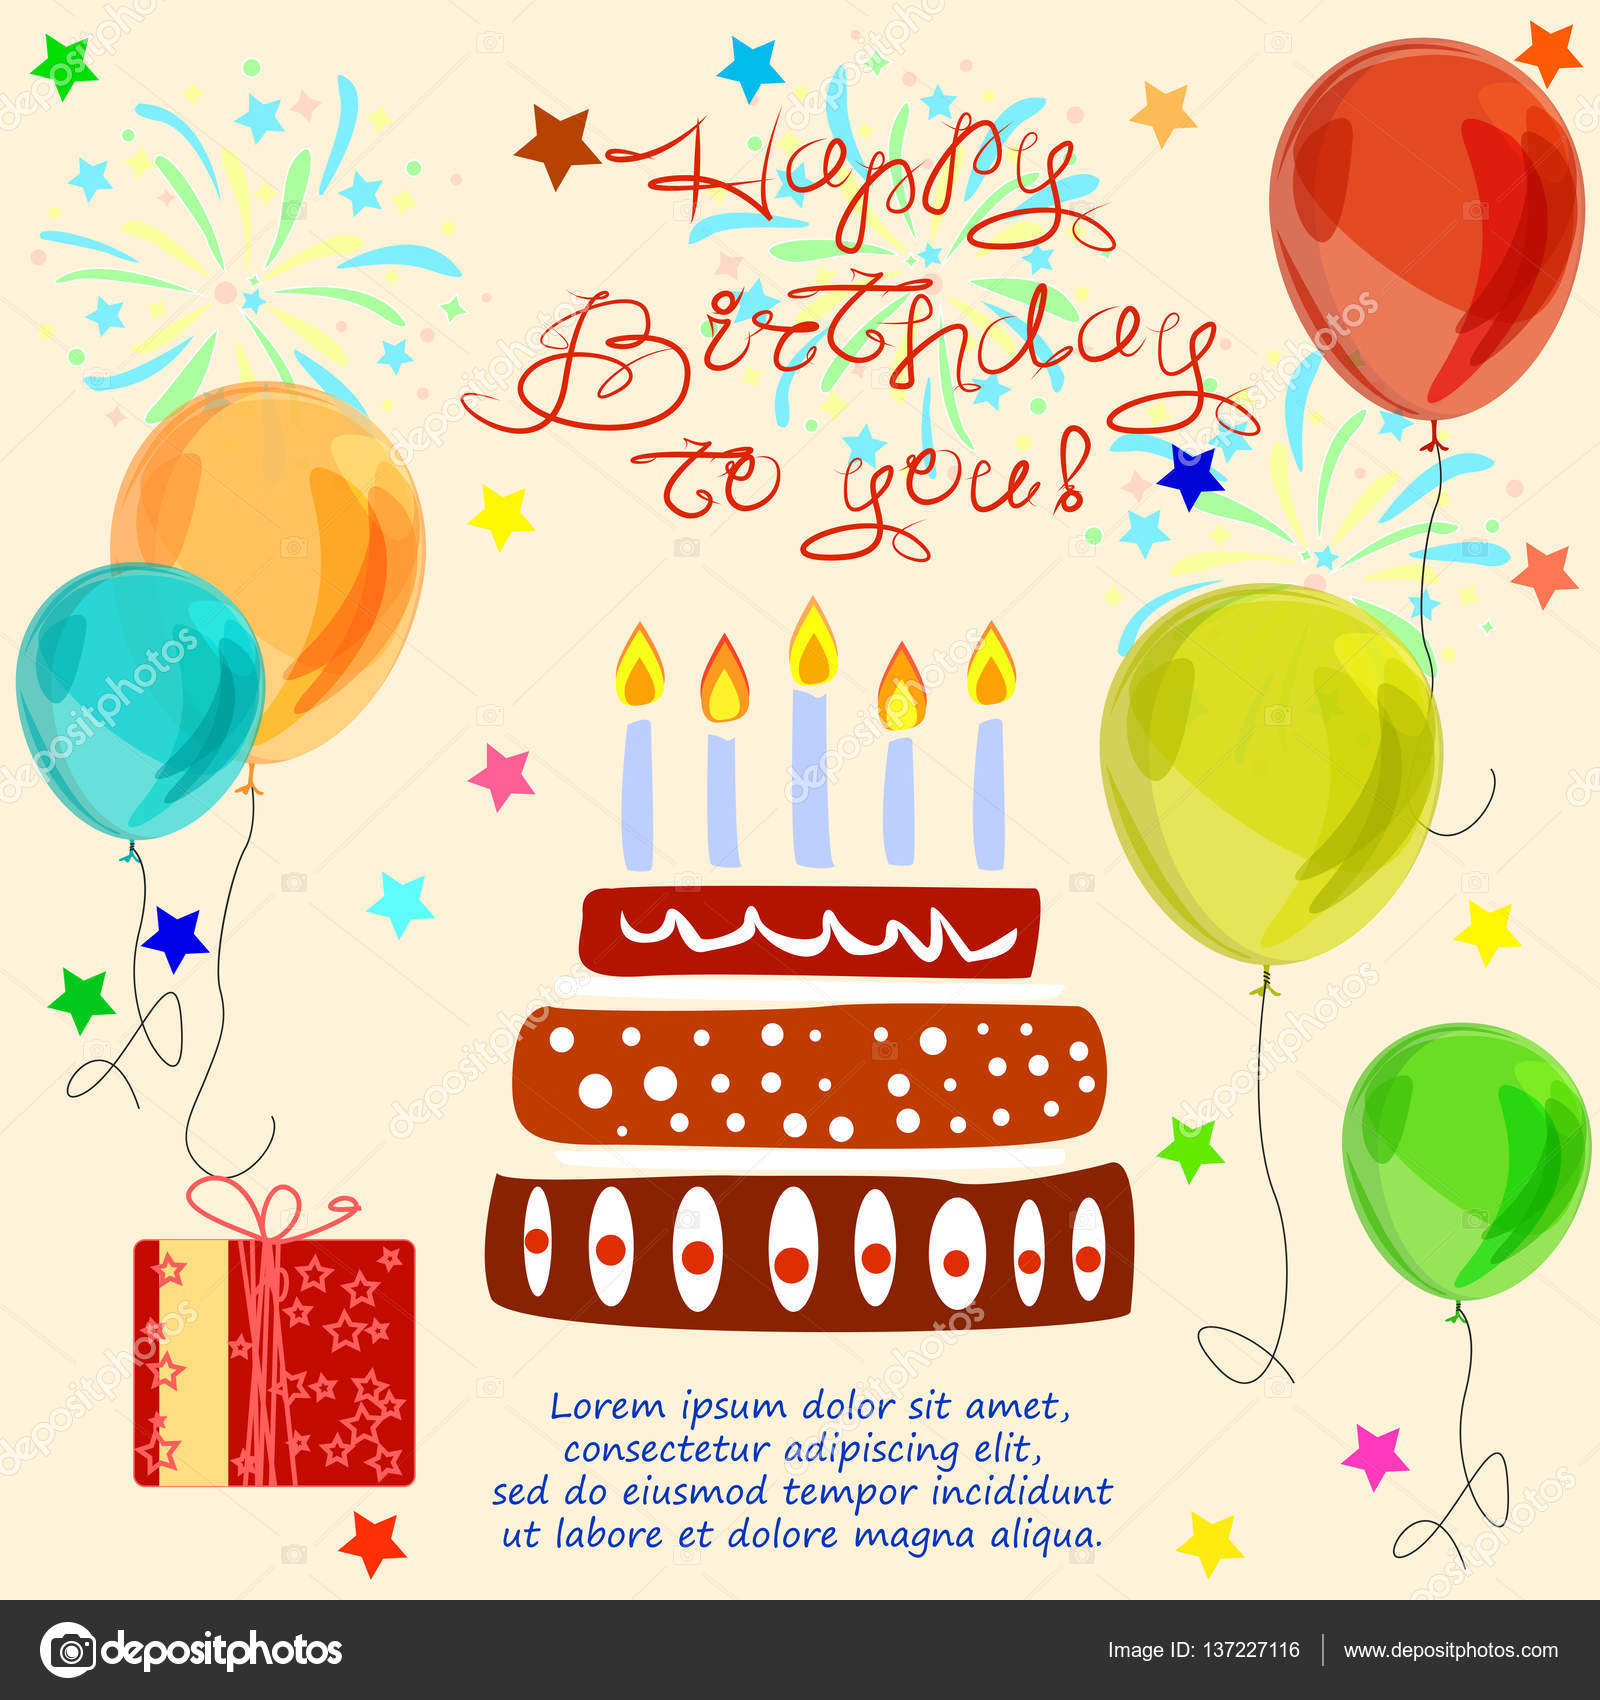 Happy Birthday Day Card Cake Candles Firework Balloons Gifts Stars It Can Be Used As Greeting Background Poster Design Element In Your